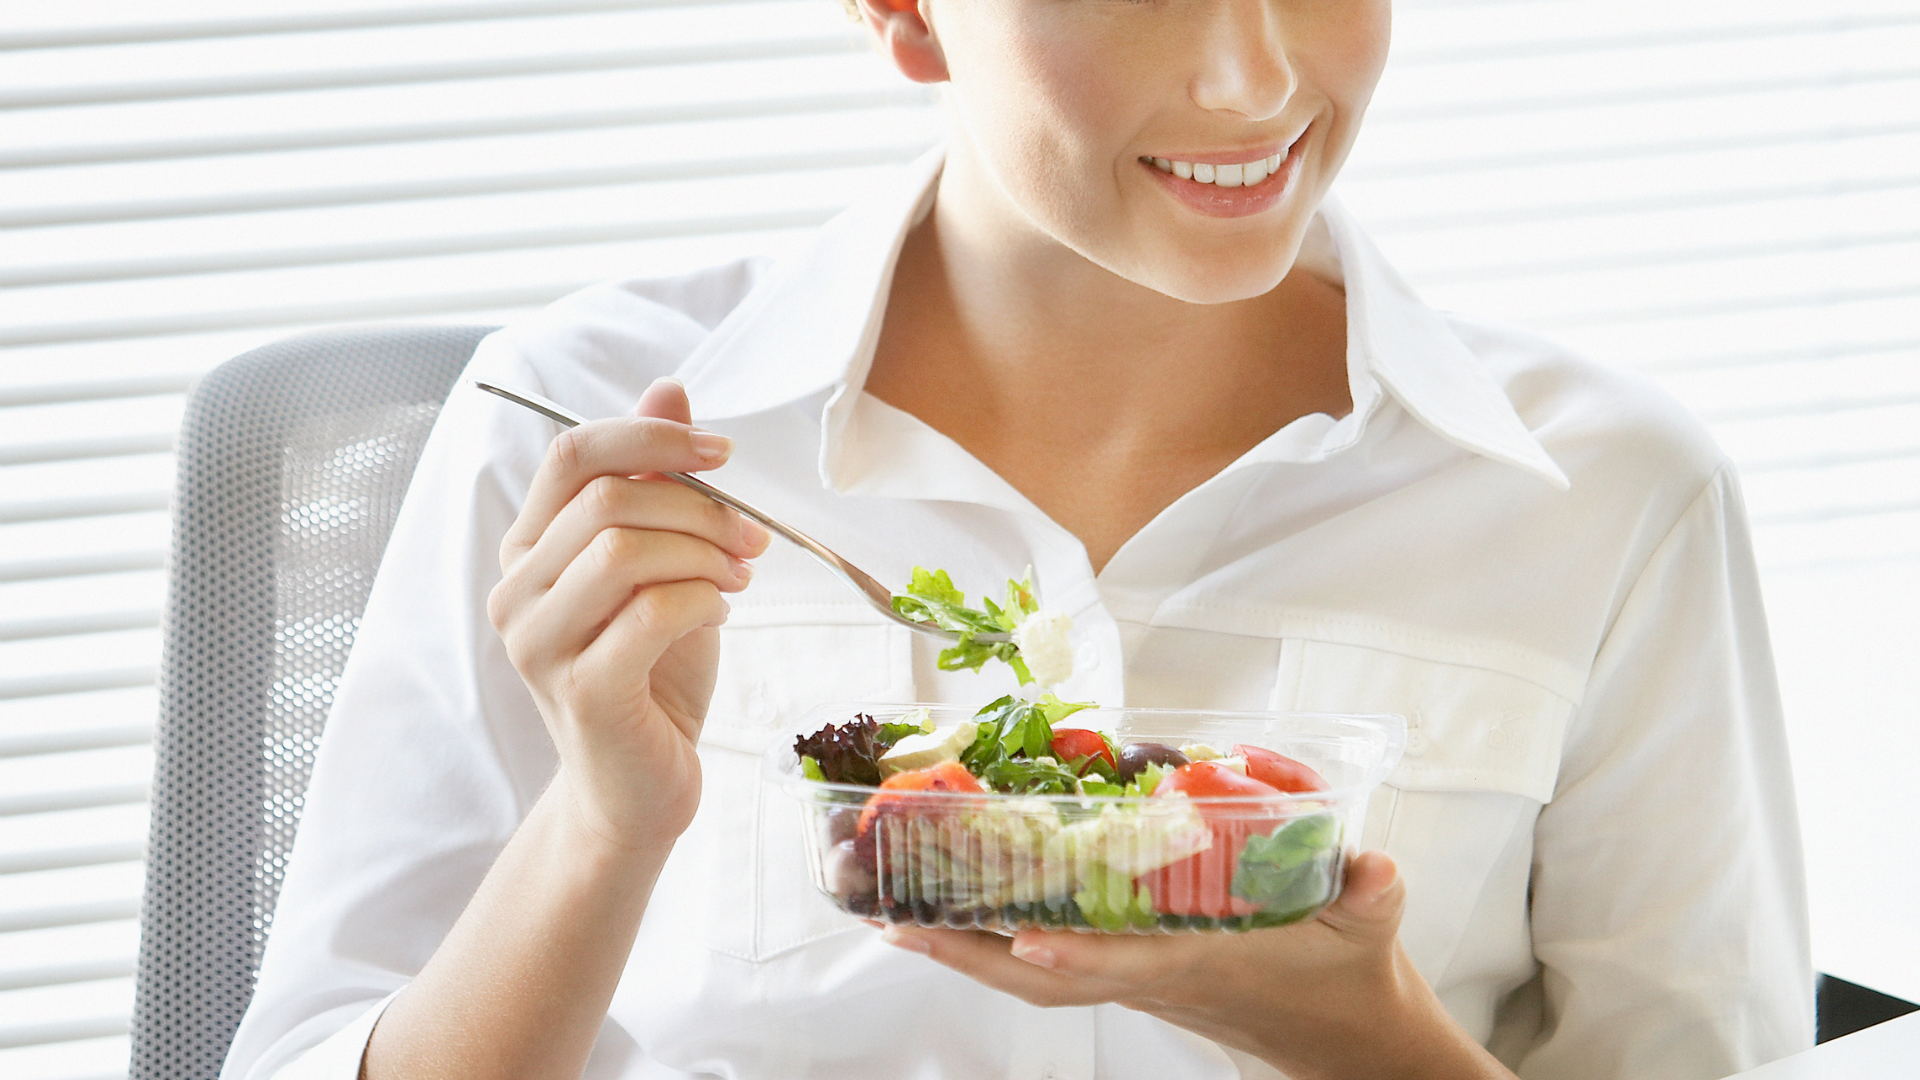 Healthy eating blueprint - Click to download